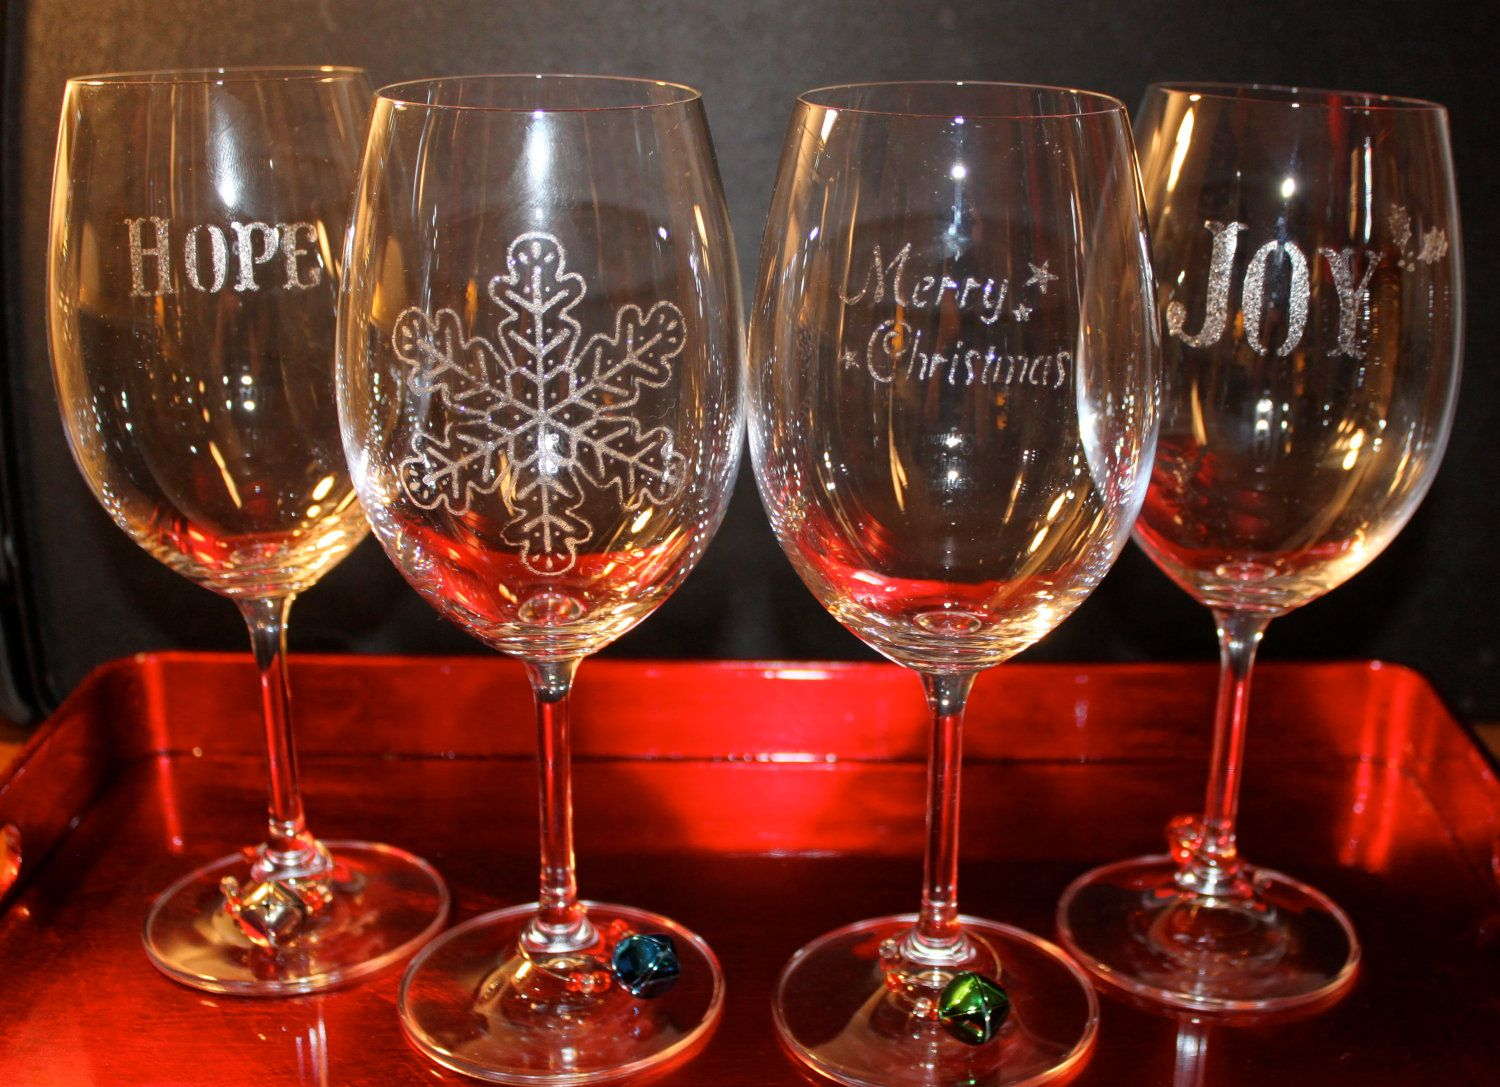 Set Of 4 Holiday Hand Painted Wine Glasses With Charms Love Hand Painted Wine Glasses Painted Wine Glasses Painting Glassware